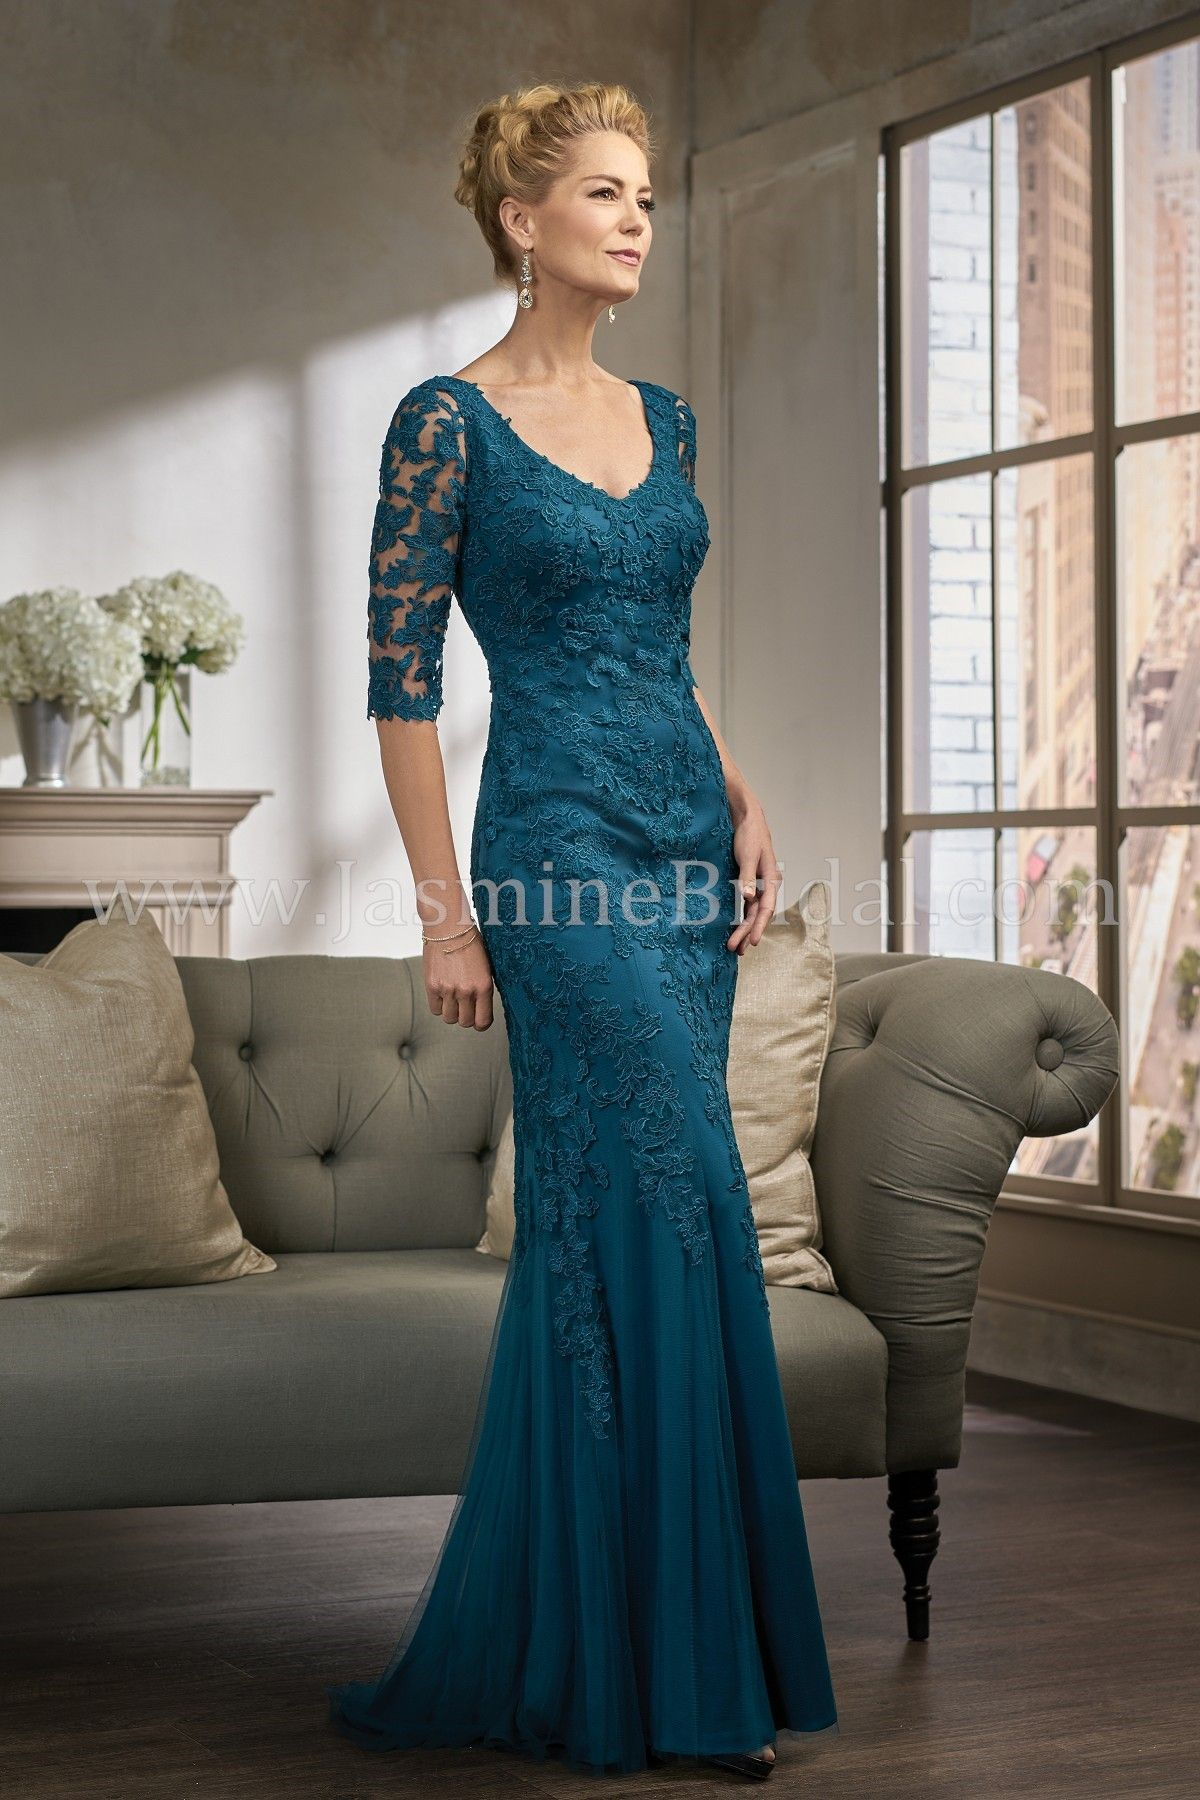 Jasmine bridal jade couture style k in new teal